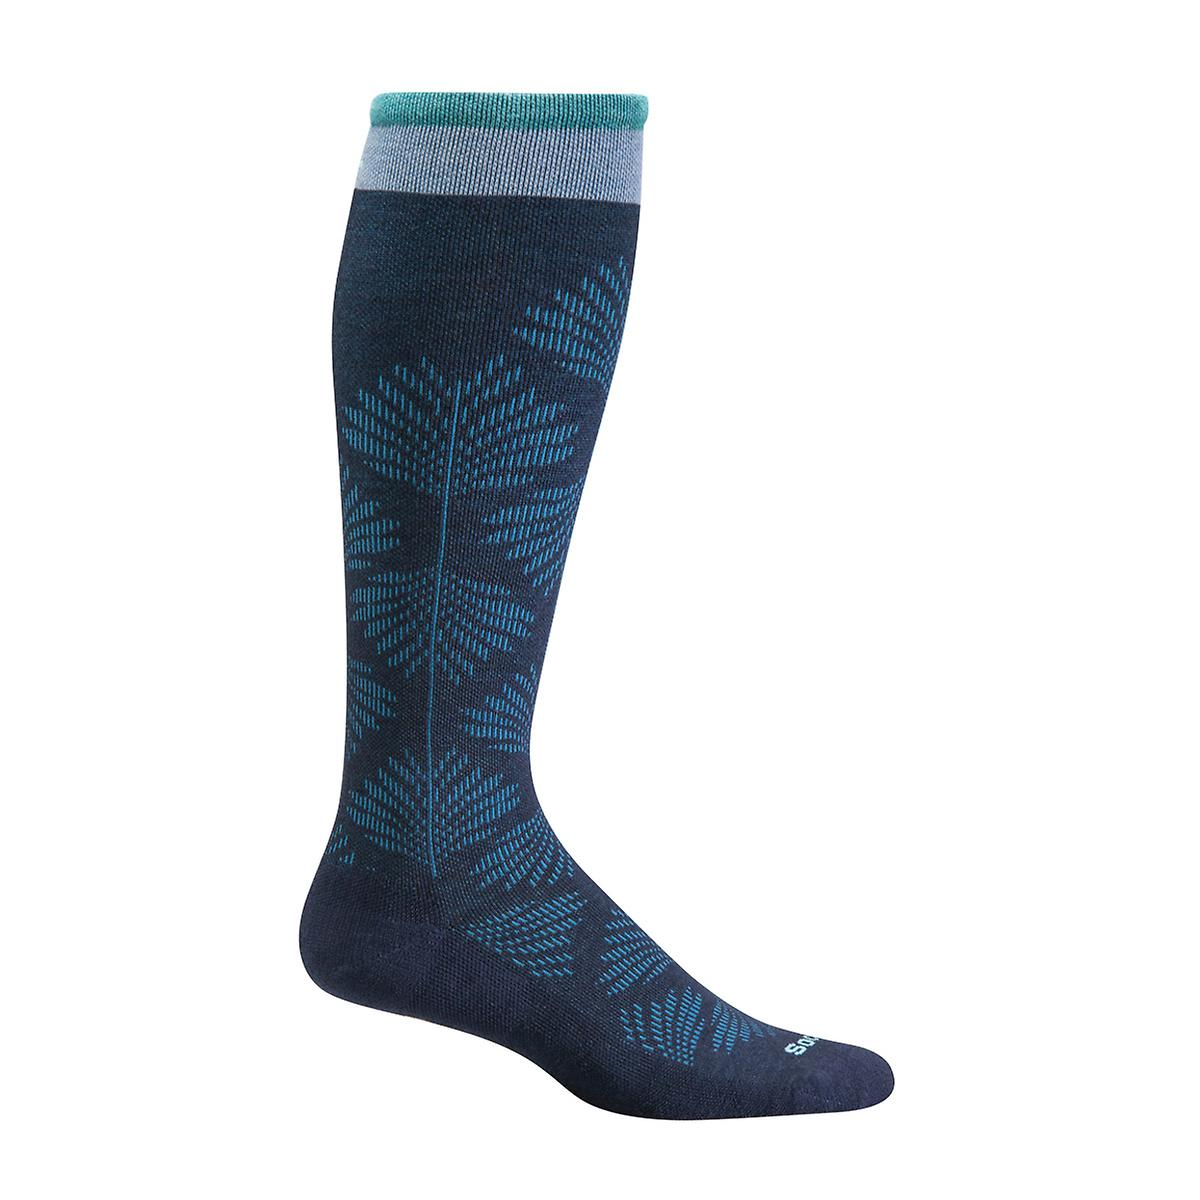 Floral Navy Compression Socks